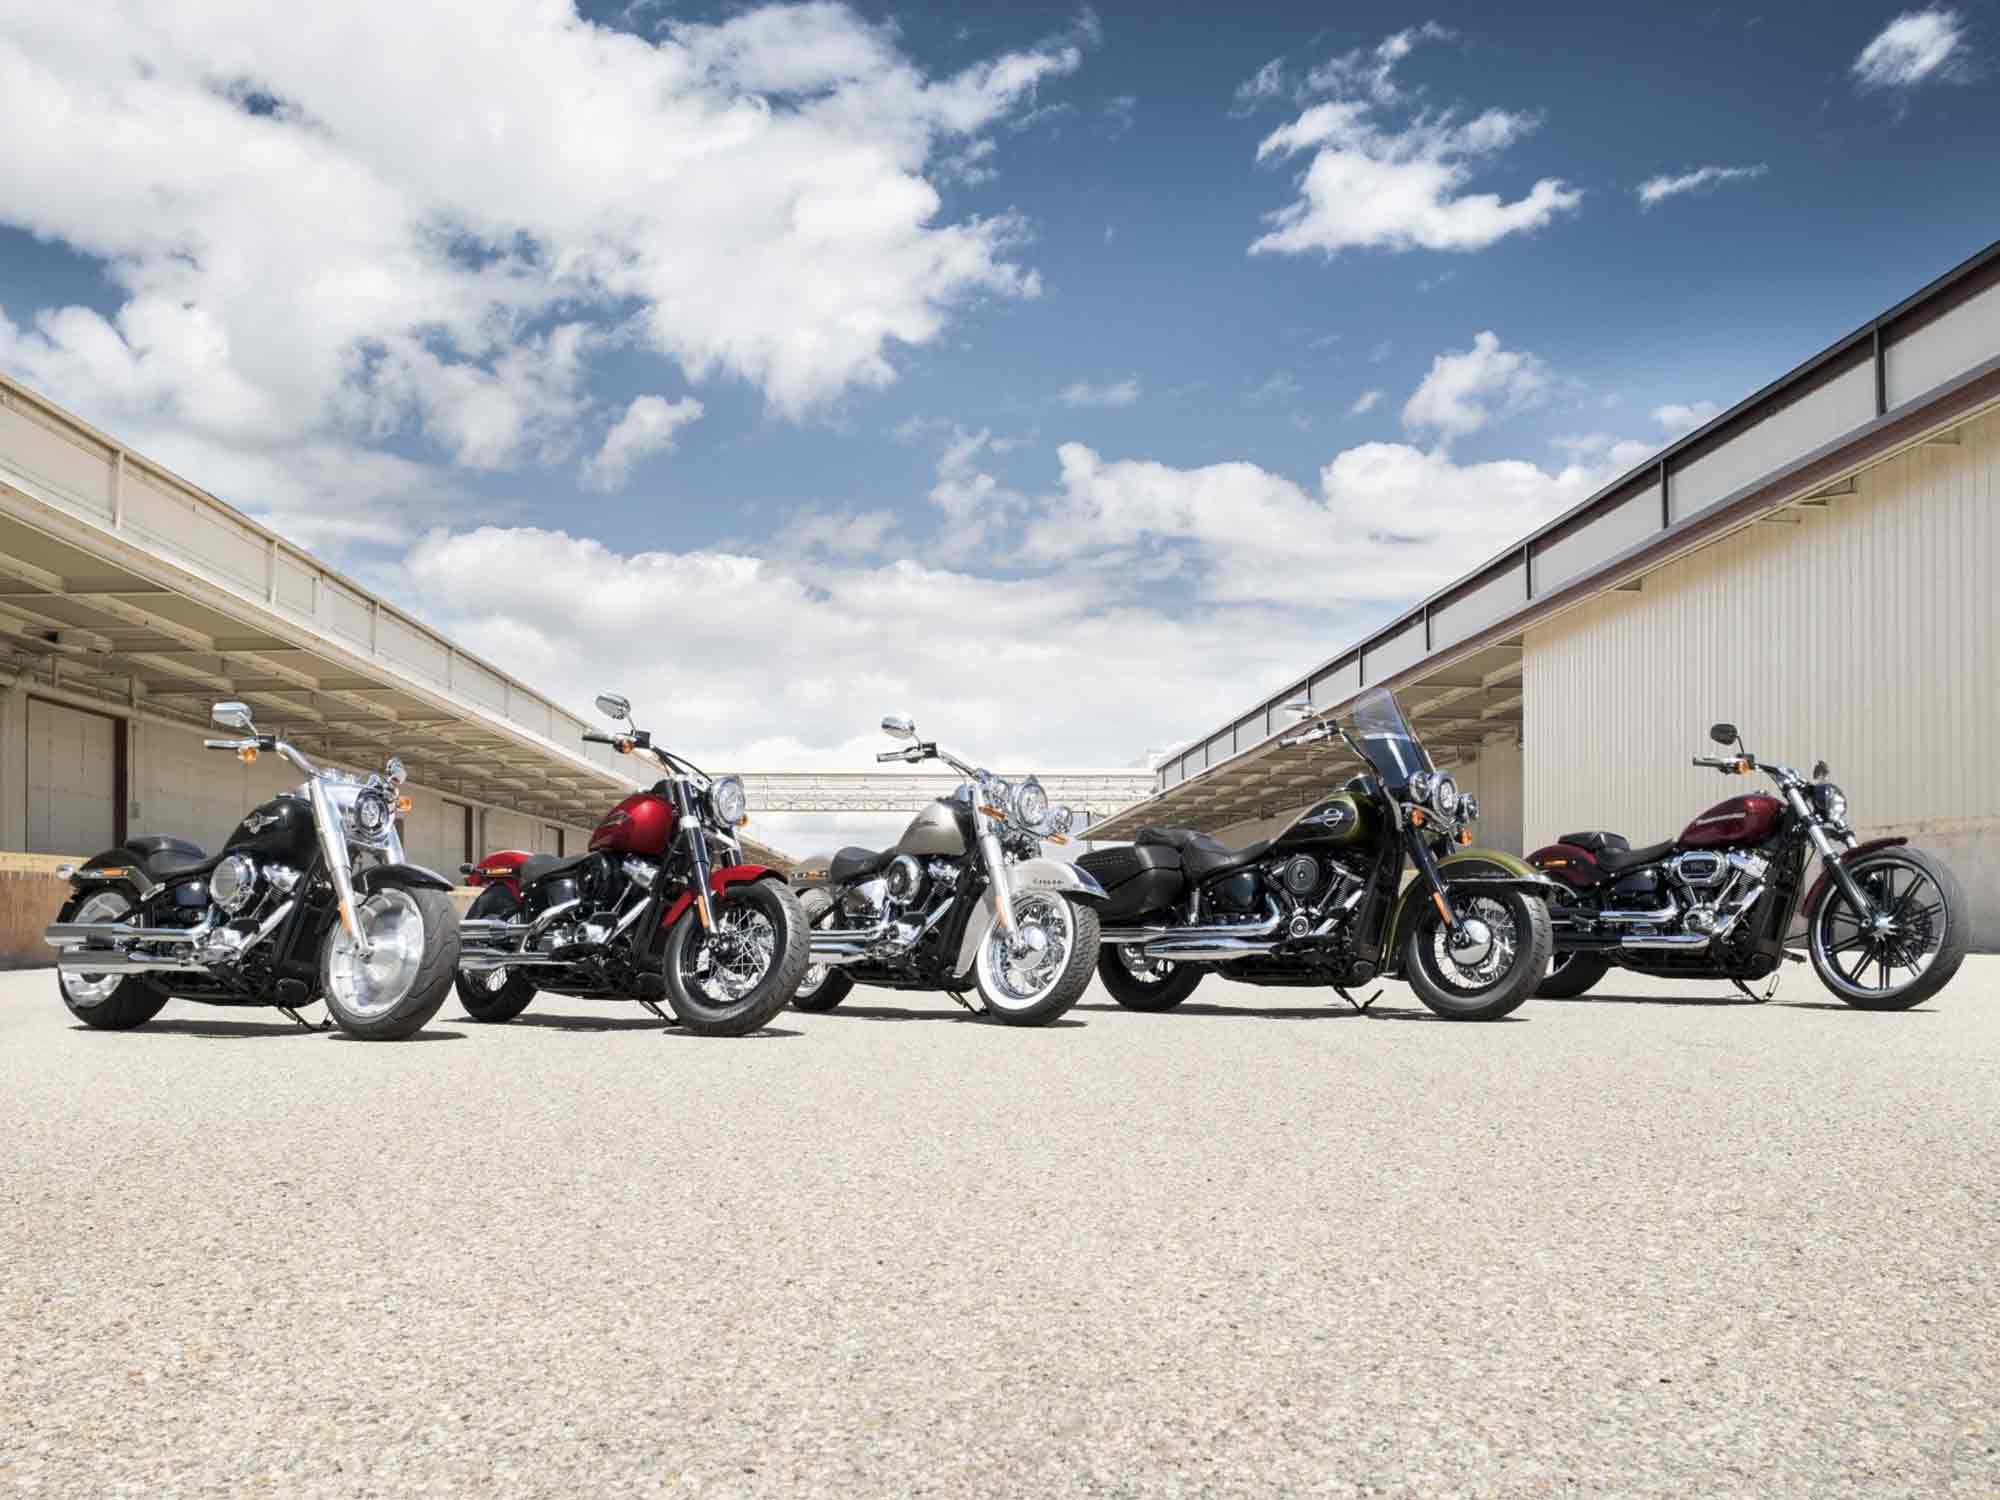 Harley-Davidson Now Has a Certified Pre-owned Program